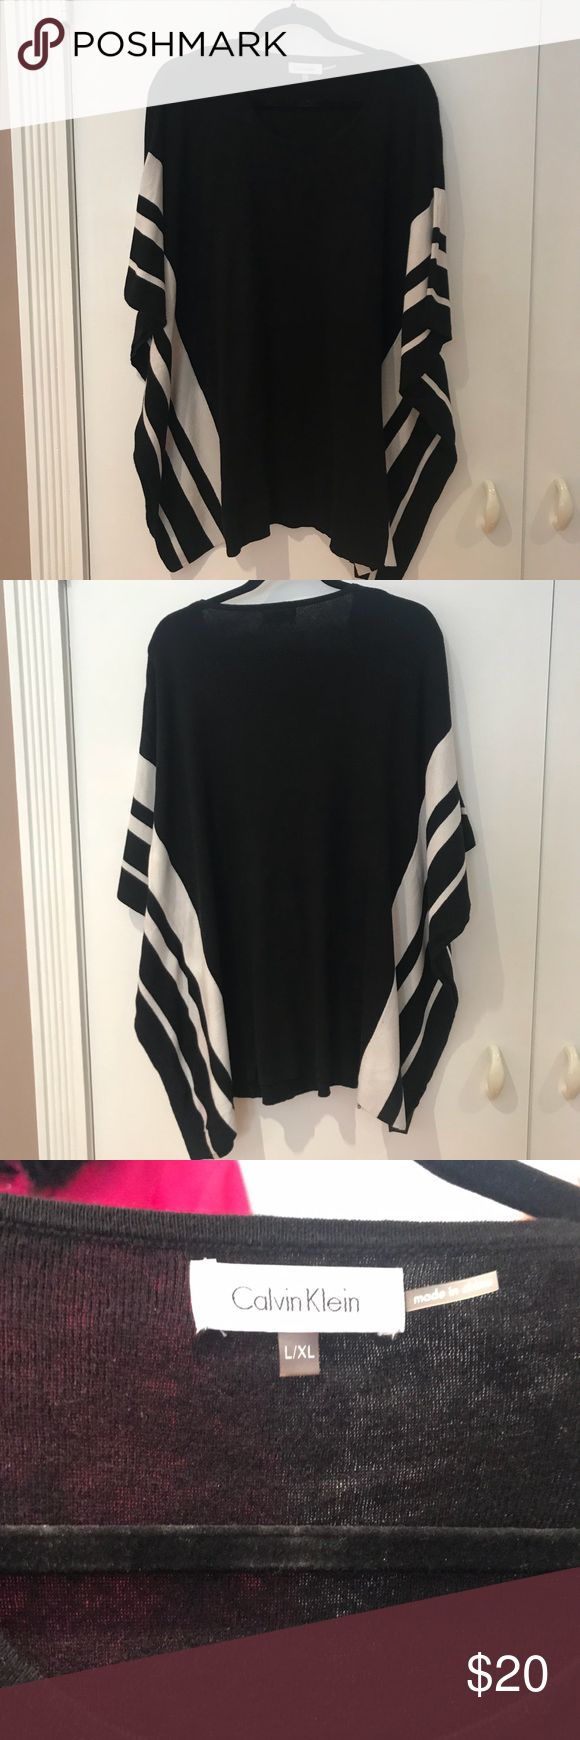 Calvin Klein poncho w/ striped details on the side Calvin Klein L/xl Black poncho top with cream striped details on the side. Perfect with a pair of leggings and a gray pair of boots. Fun, easy and very chic!  Calvin Klein Sweaters Shrugs & Ponchos